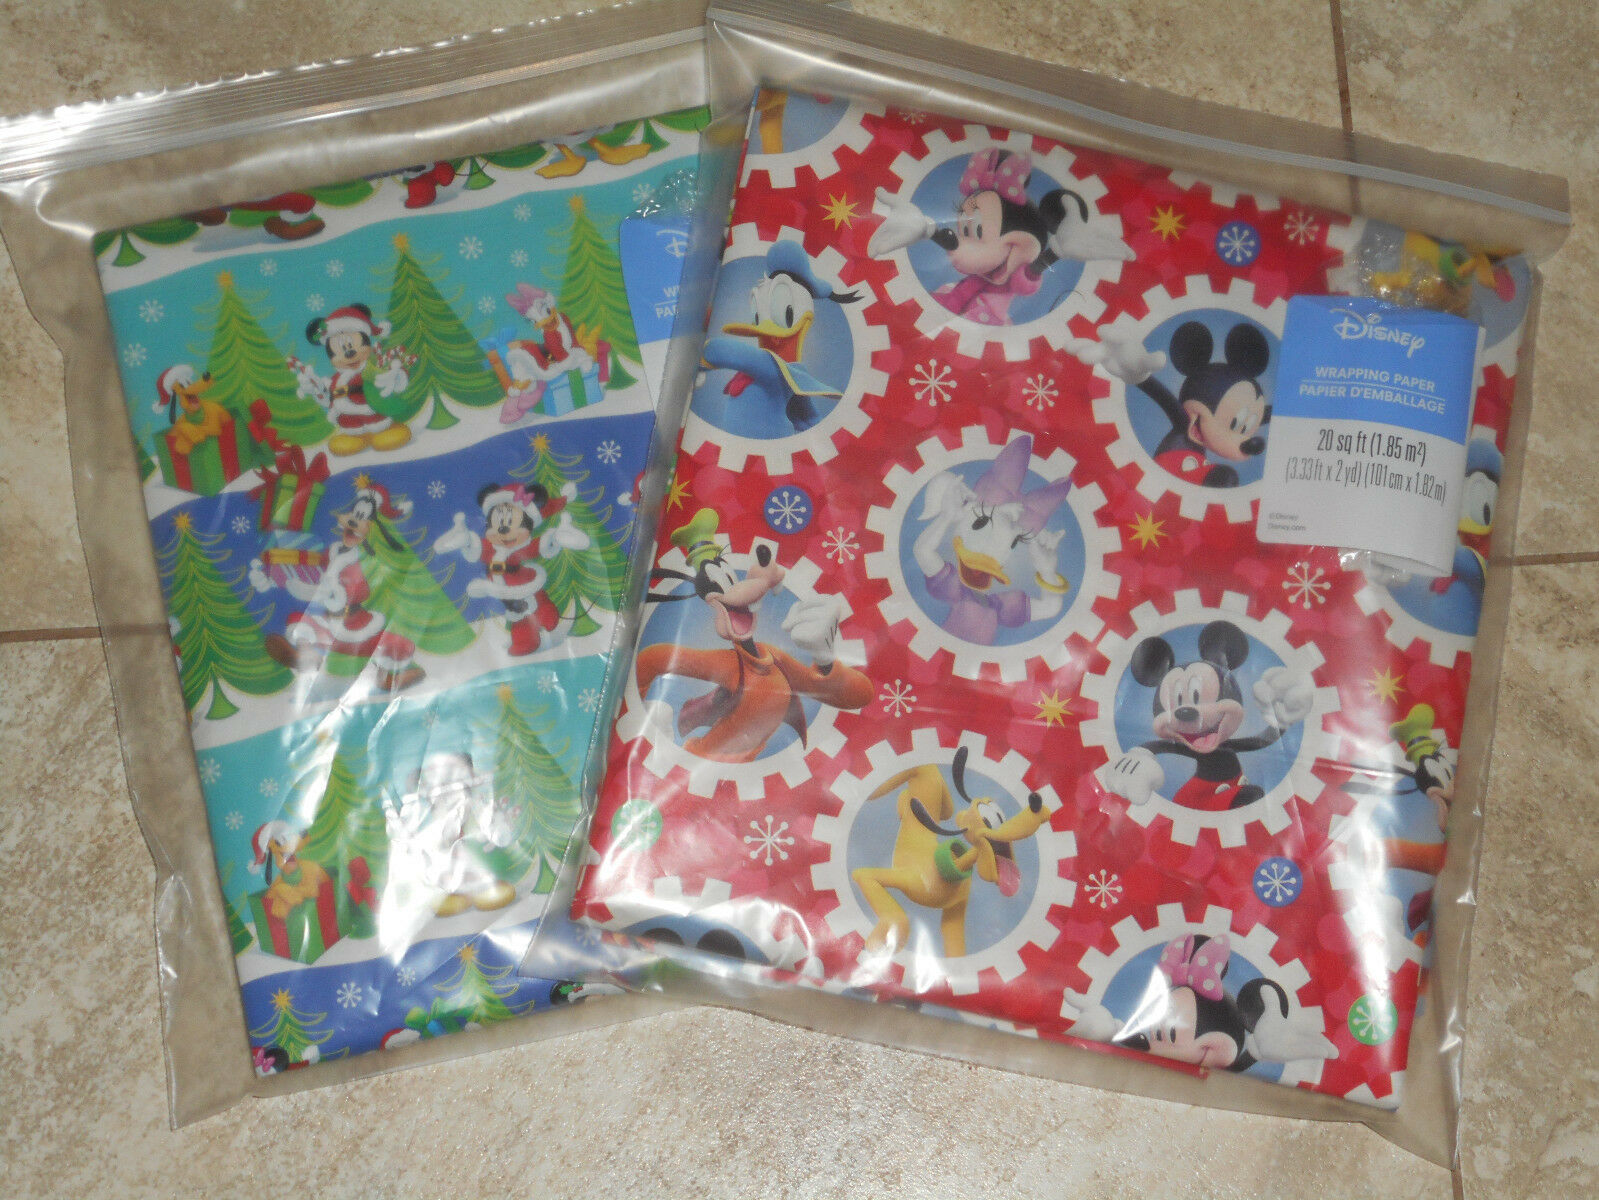 minnie mouse wrapping paper Vintage wrapping paper gift wrap disney mickey minnie dance jukebox rockin' nip - $874 rock n' roll minnie and mickey mouse - wraps 2 shirt boxes - 83sq ft 2 full sheets 30x20 great for any occasion.